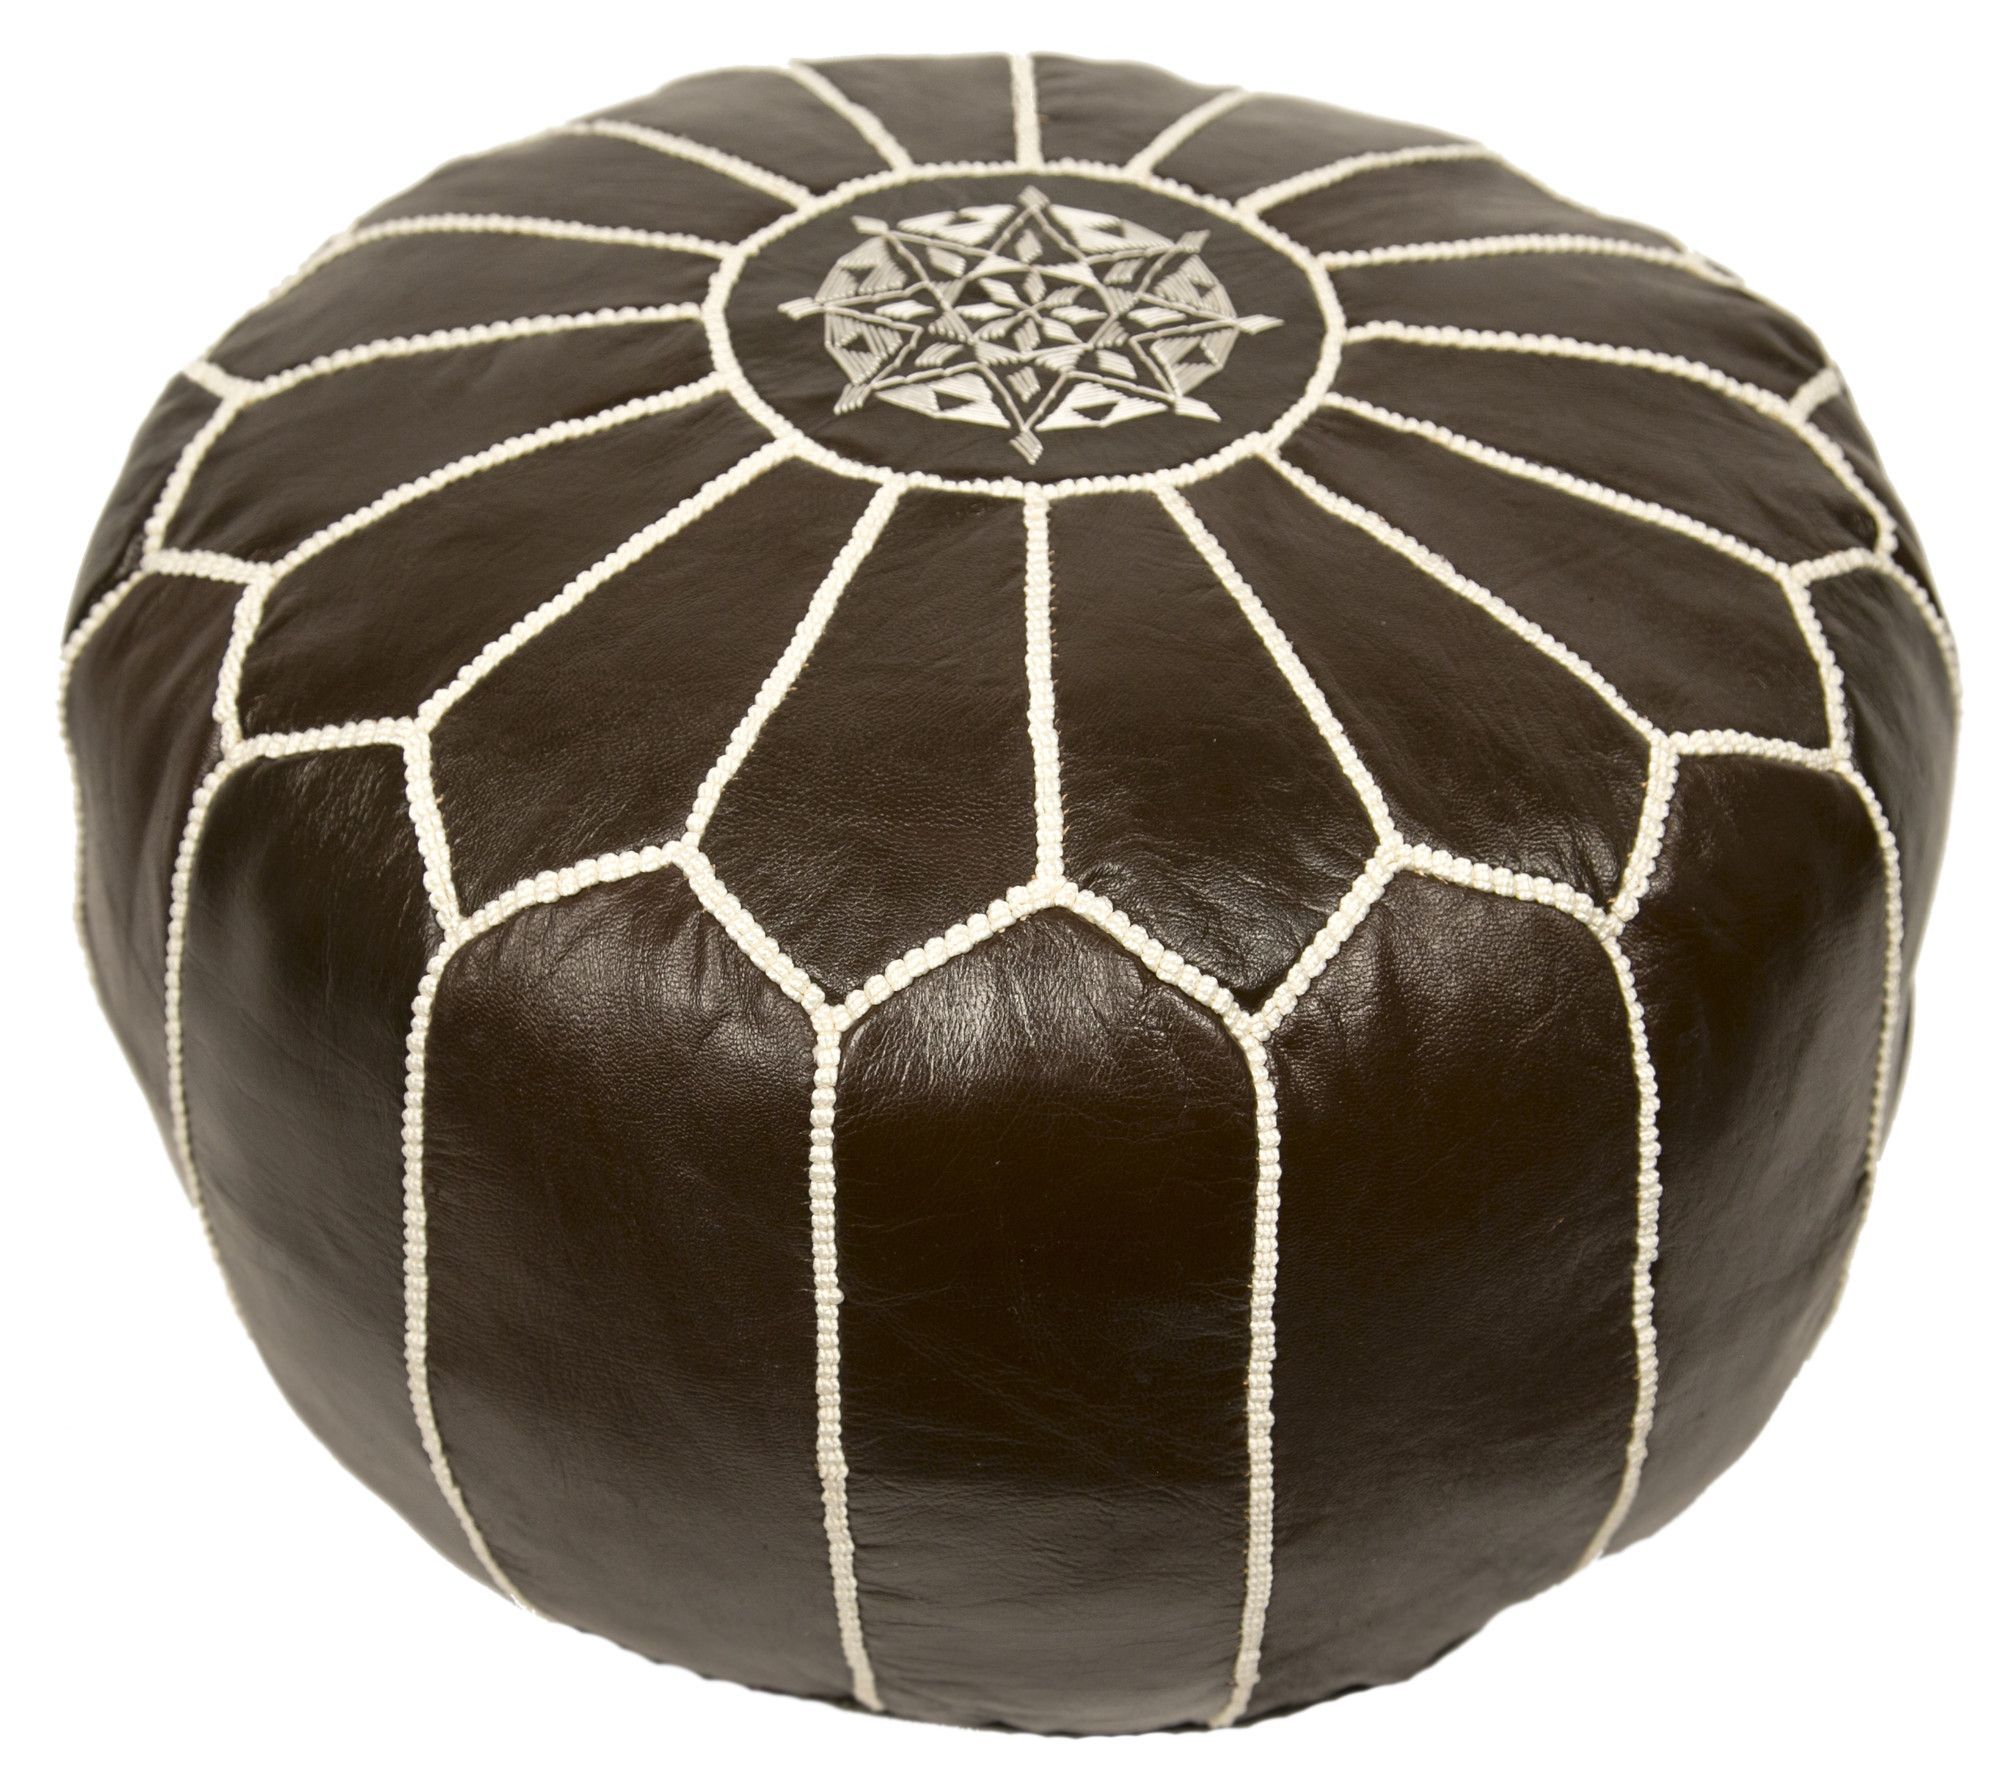 Moroccan Embroidered Pouf Ottoman | Products | Pinterest